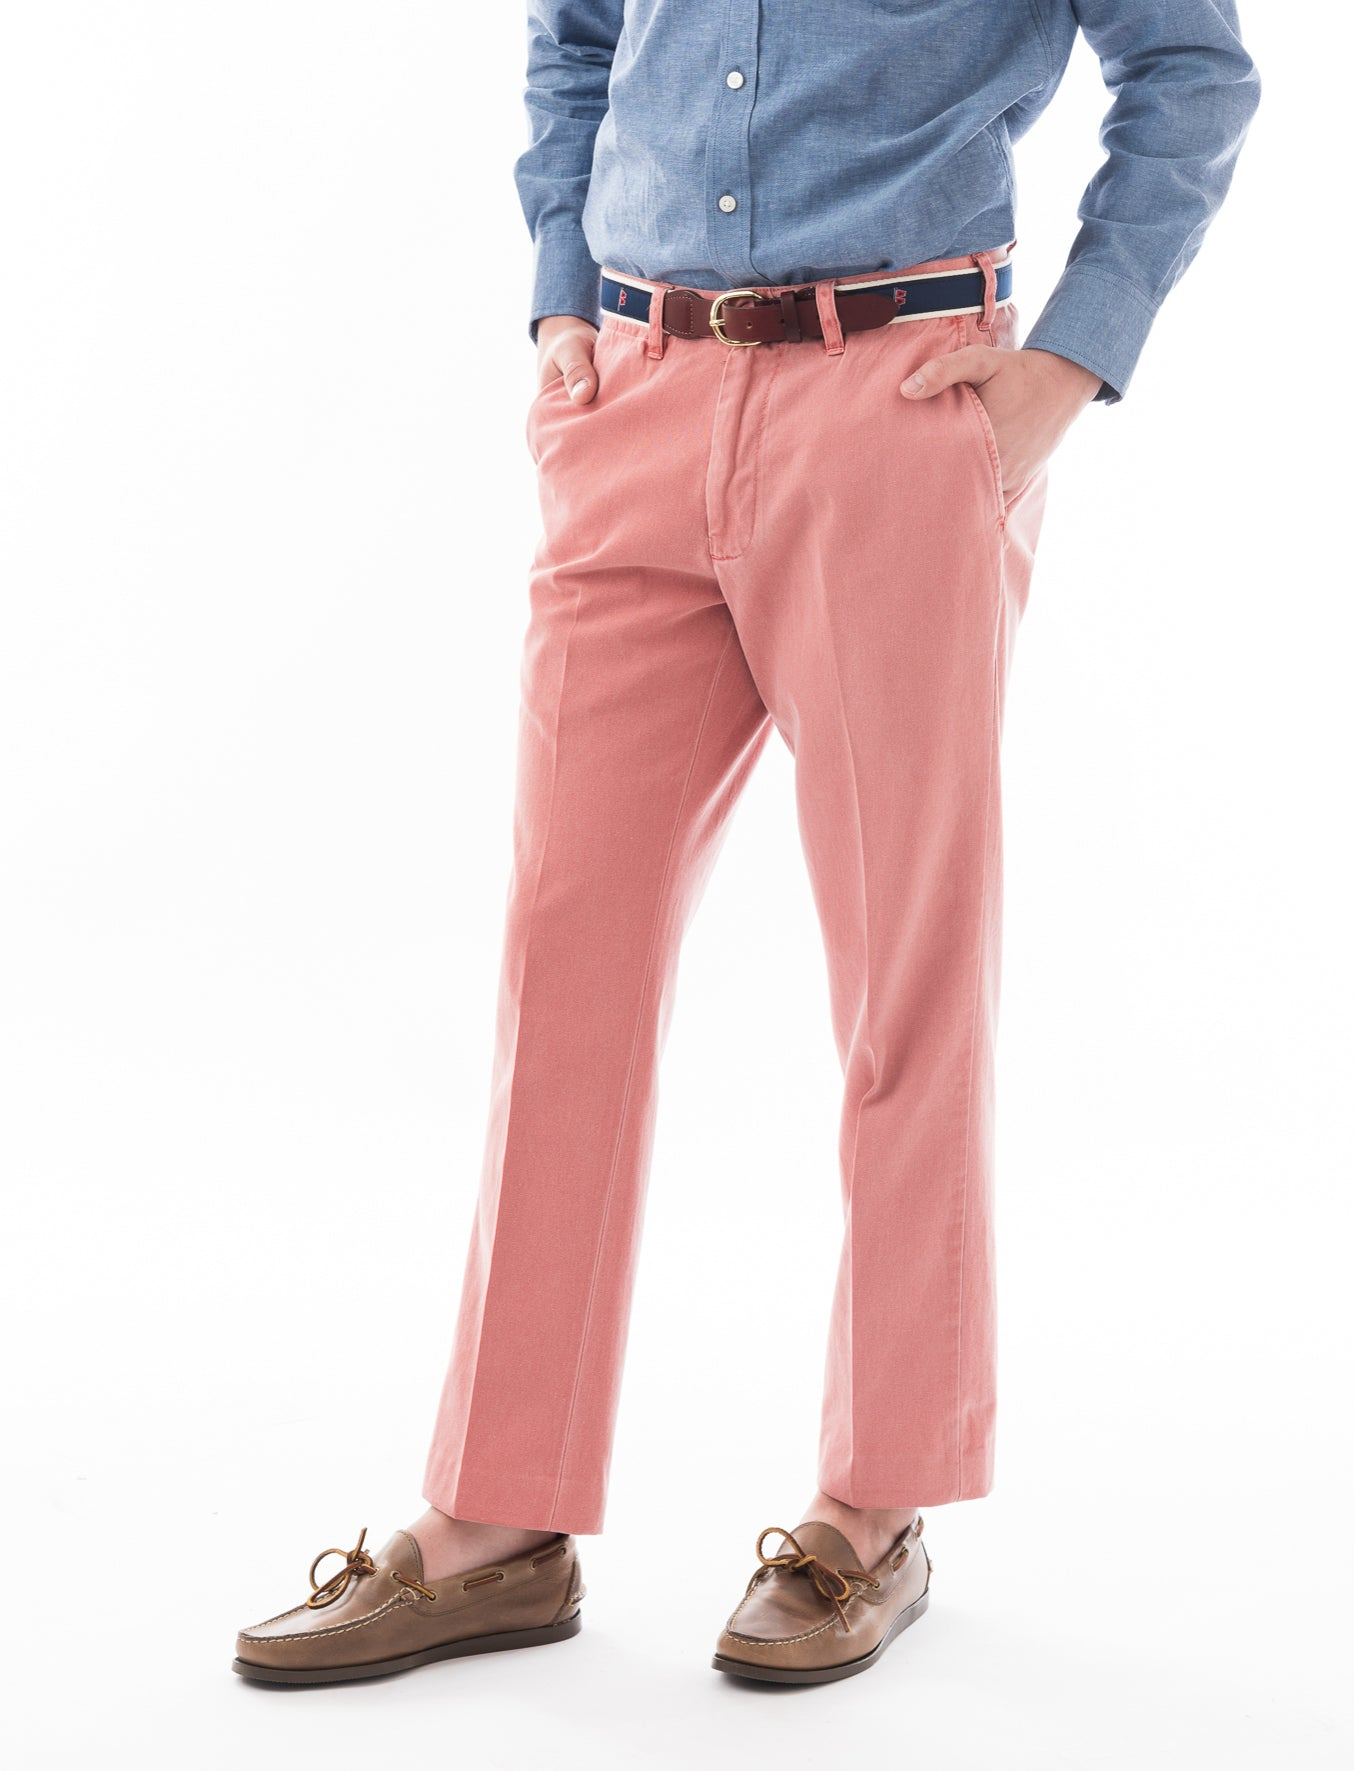 Chatham Chino Signature Pant: Regatta Red